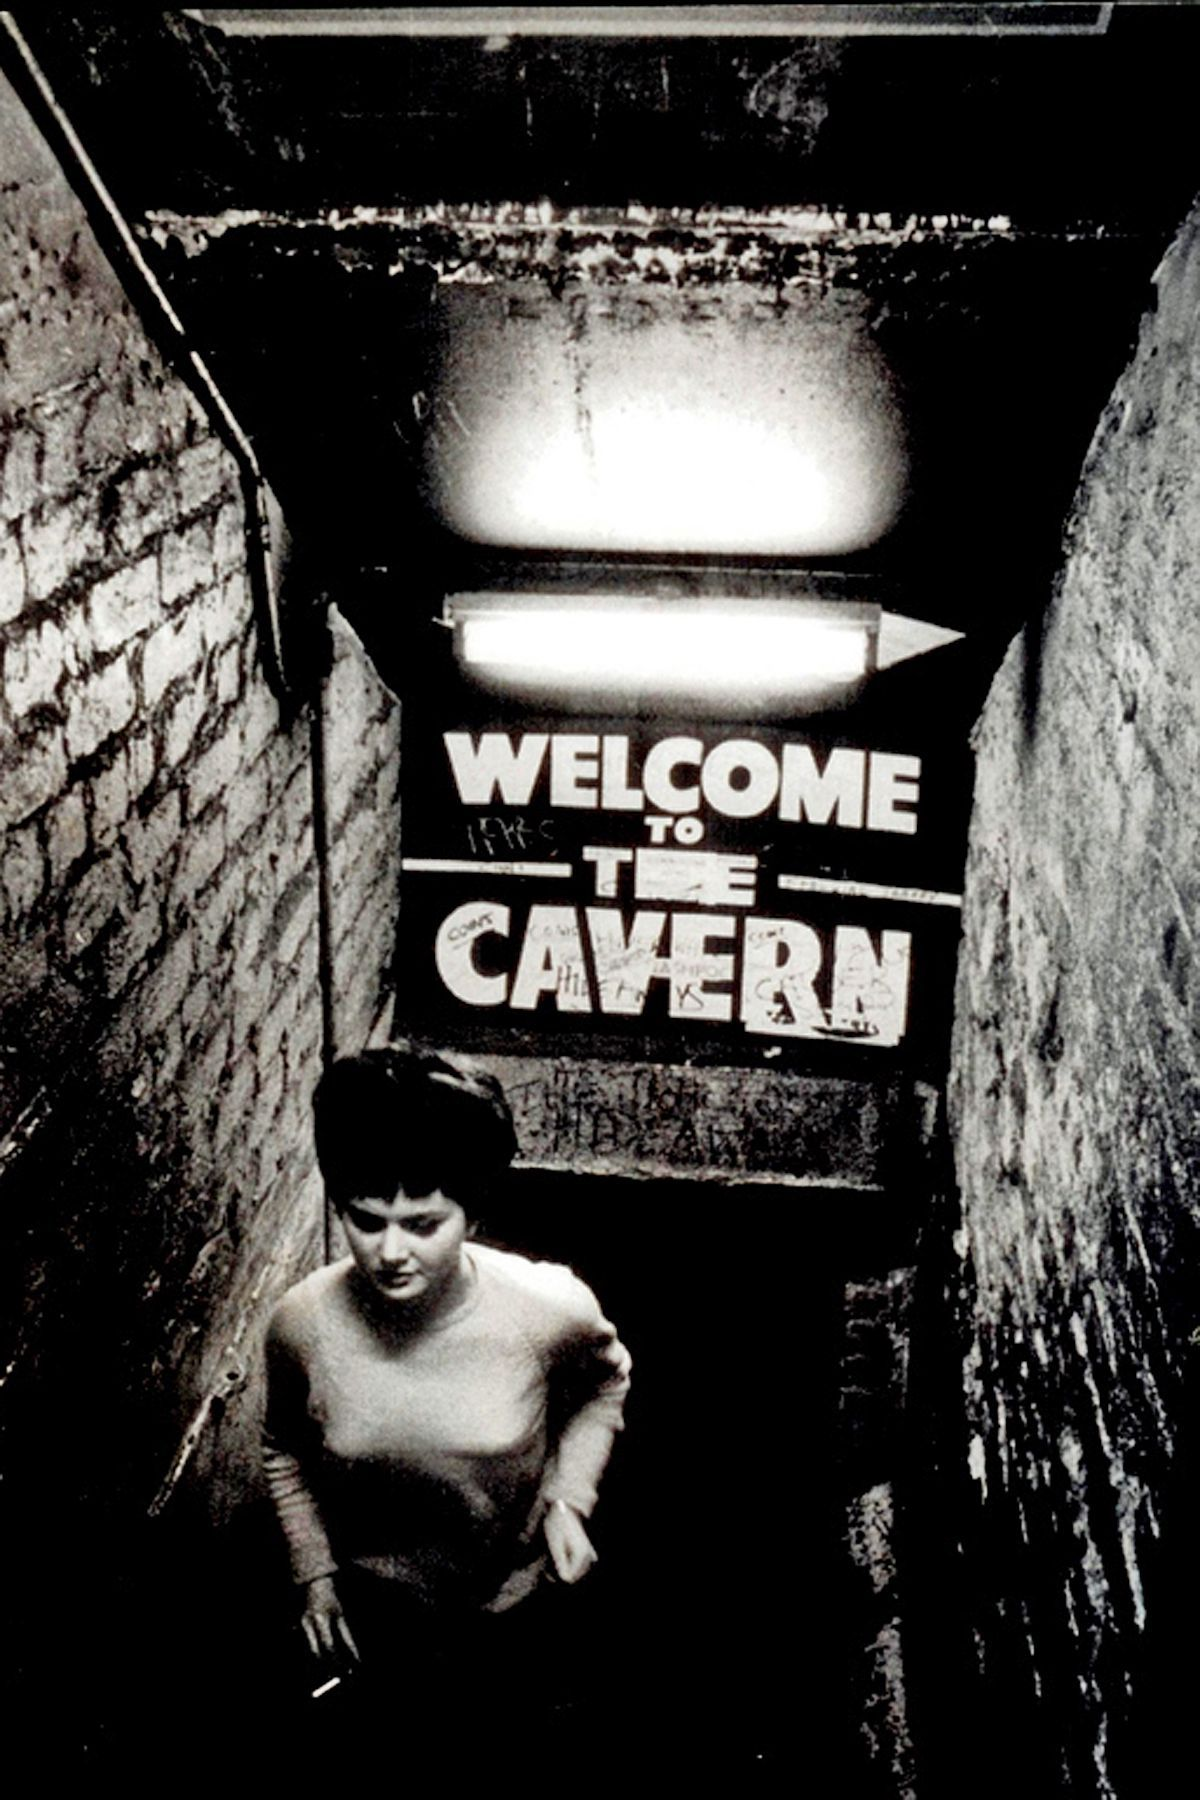 The Cavern is my favorite, shortly followed by Strawberry Field